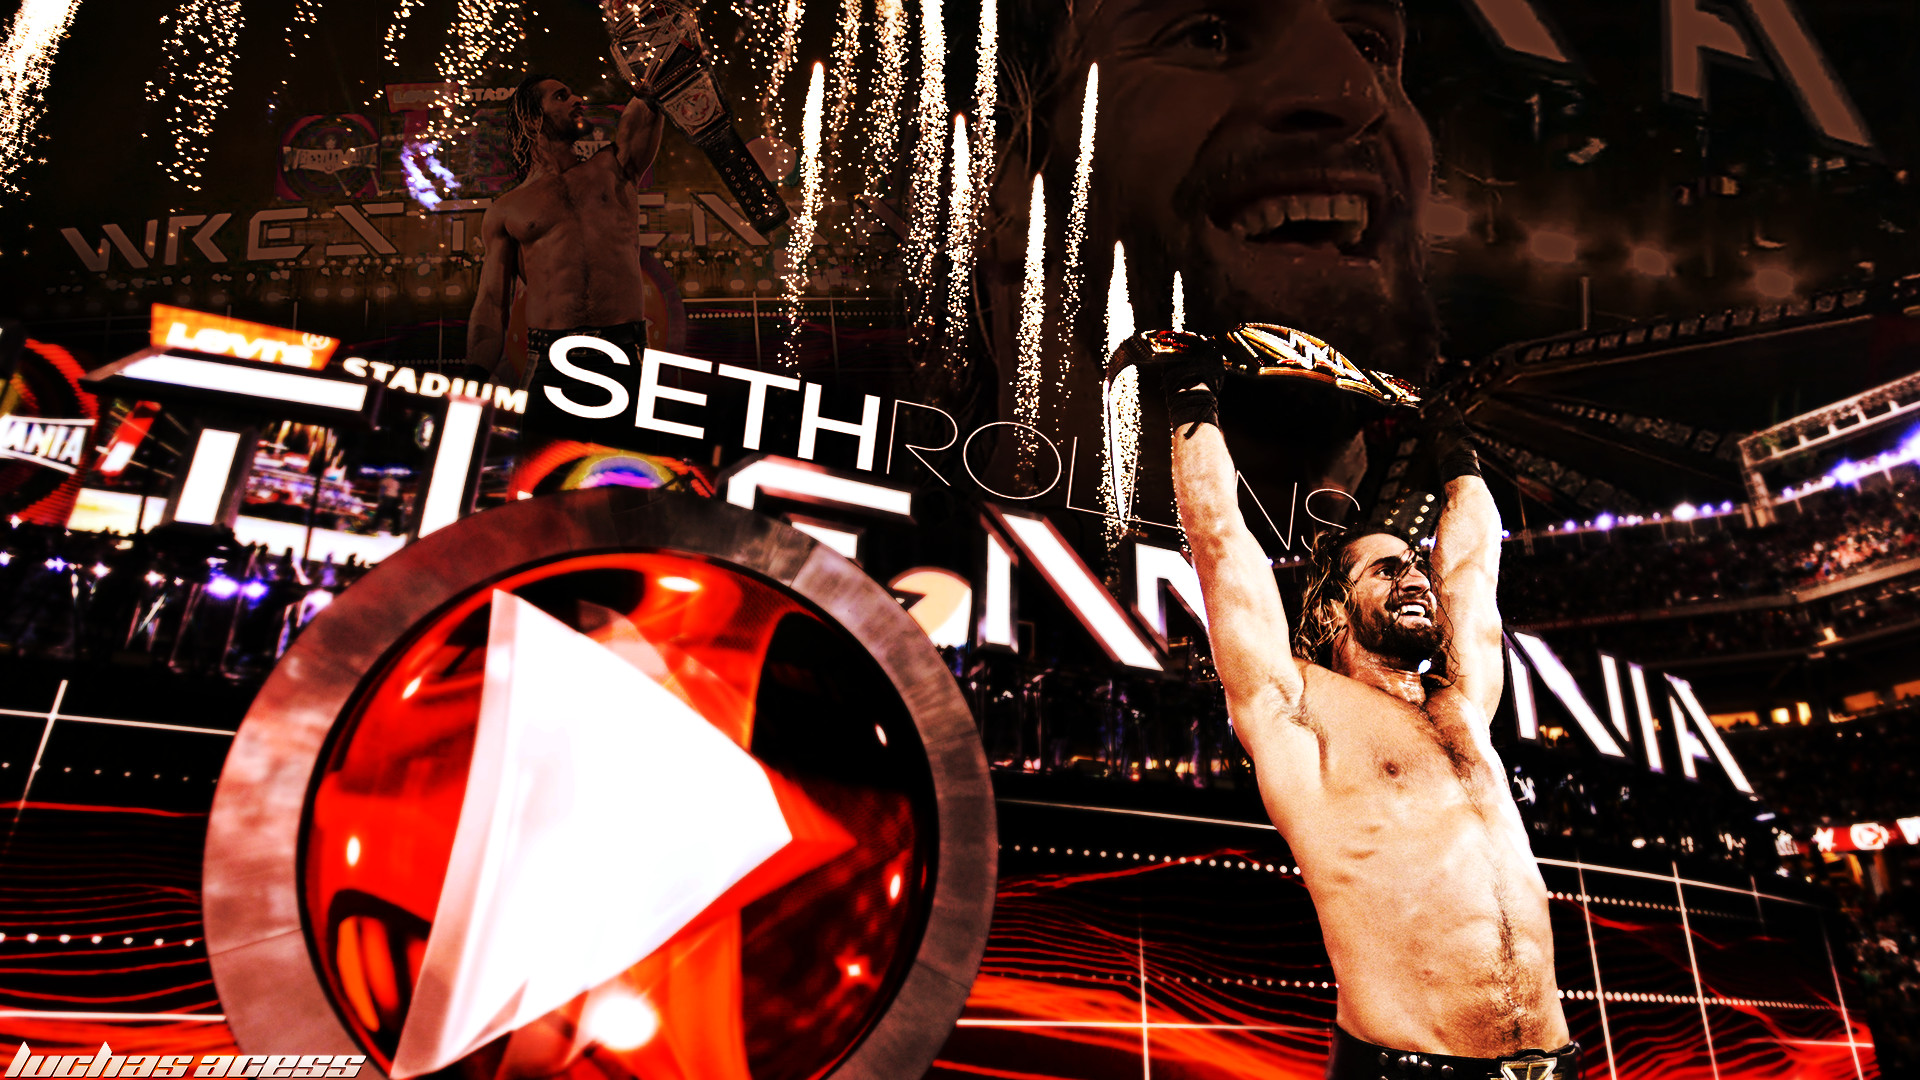 Seth Rollins Hd Wallpaper 76 Images